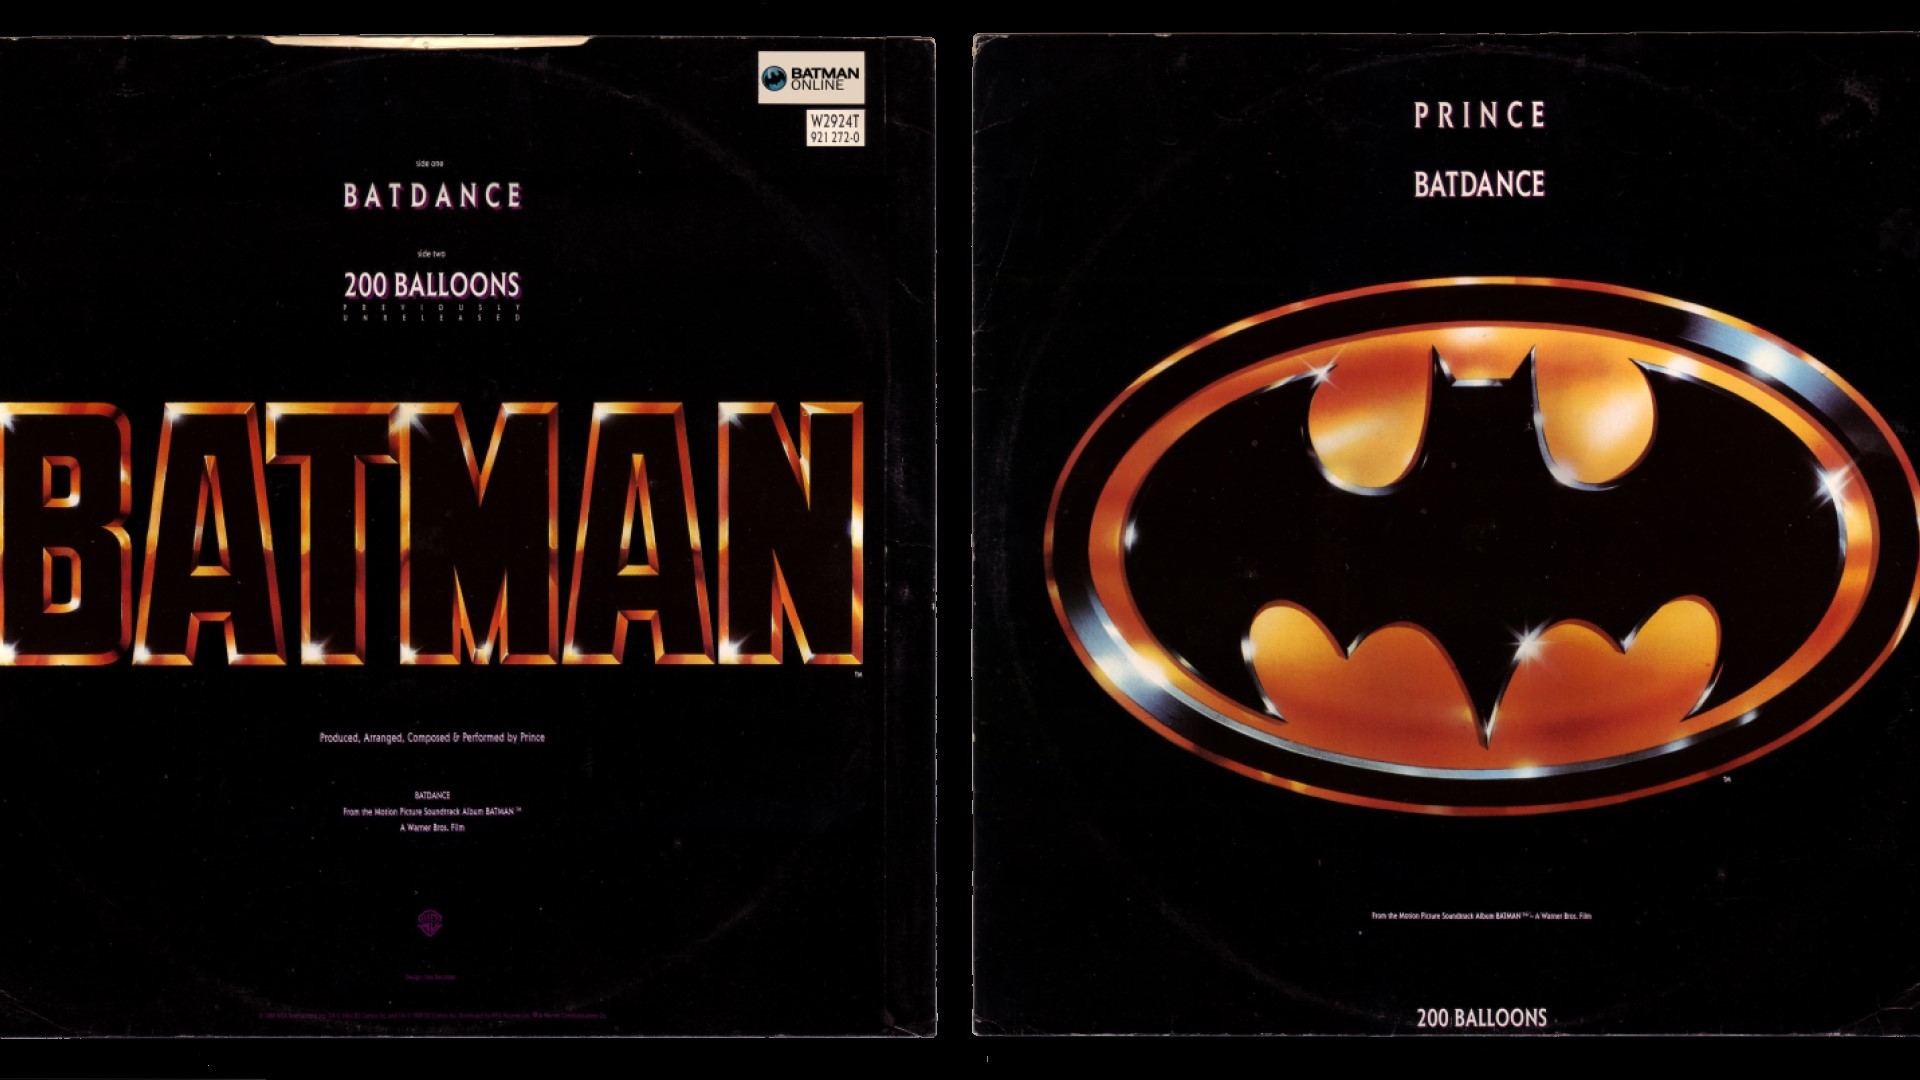 Prince Batman Soundtrack